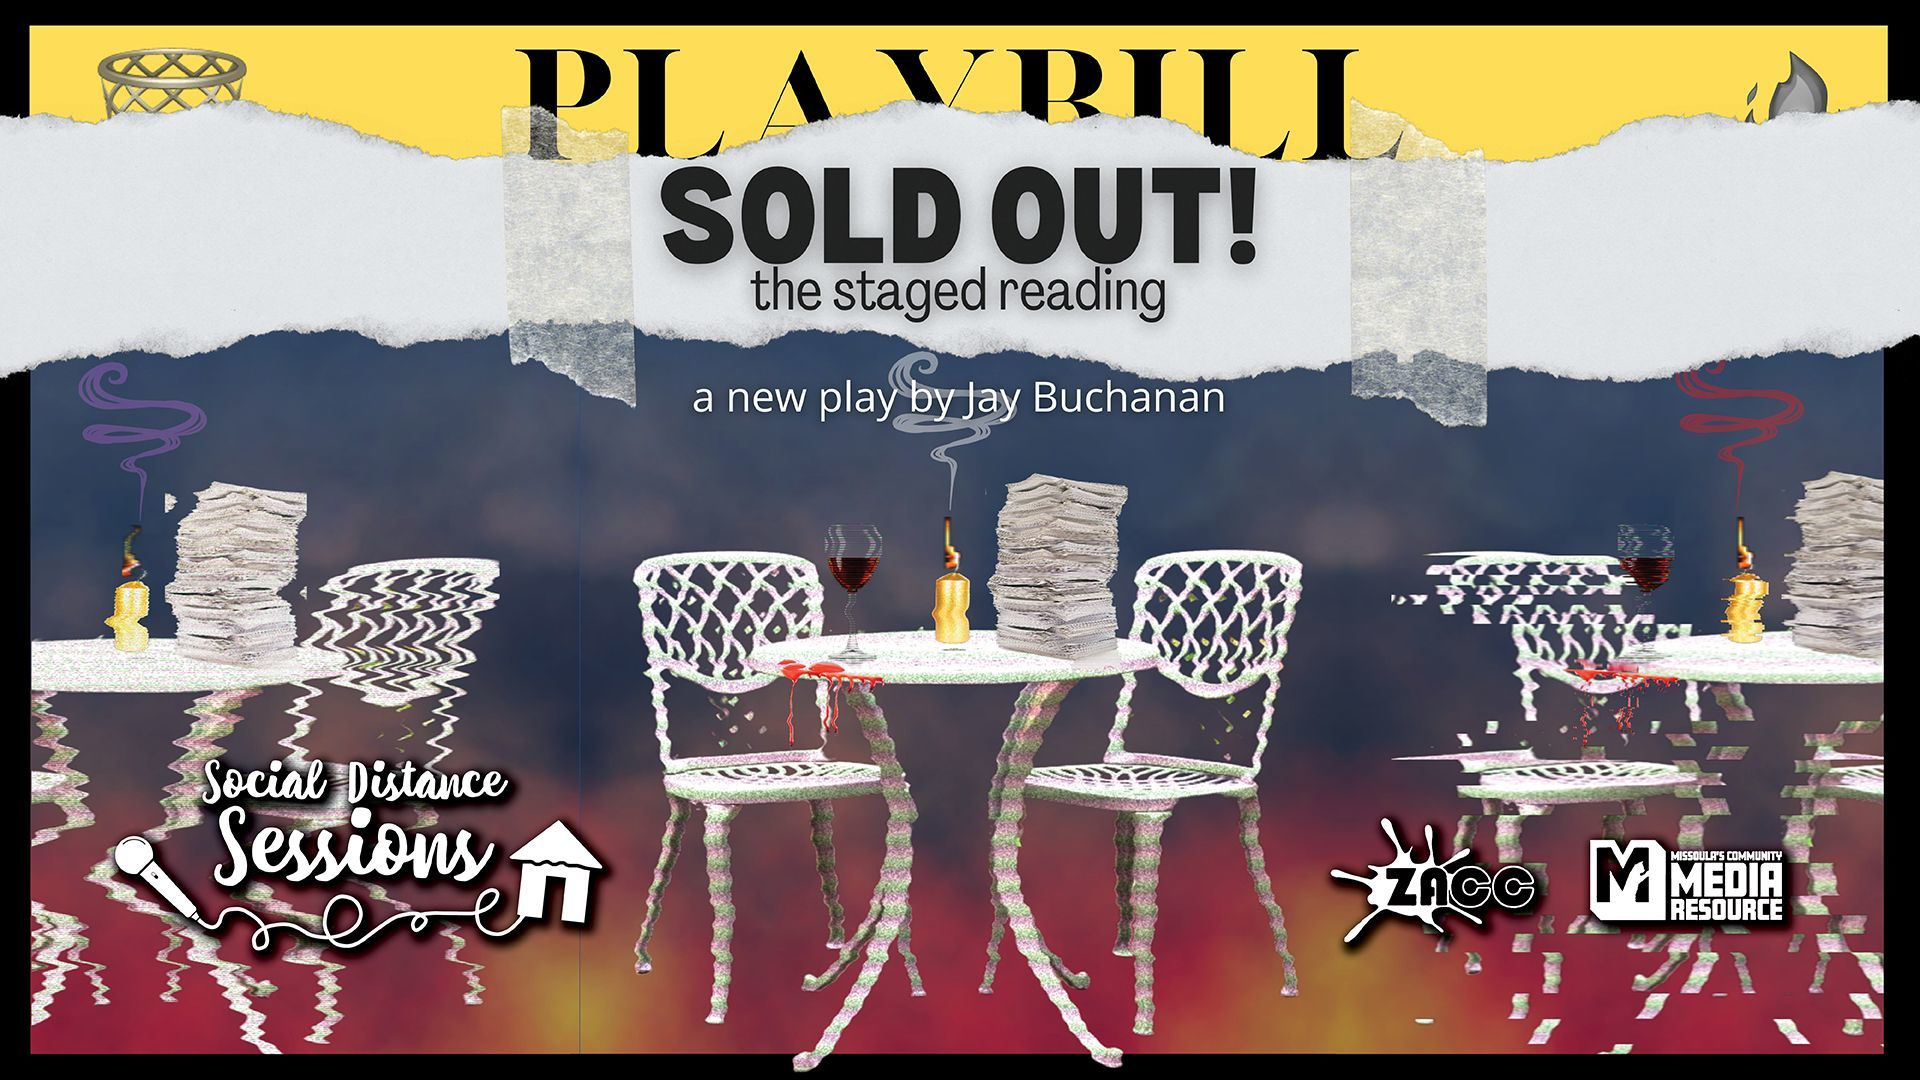 Social Distance Sessions: SOLD OUT! The Staged Reading, a new play by Jay Buchanan